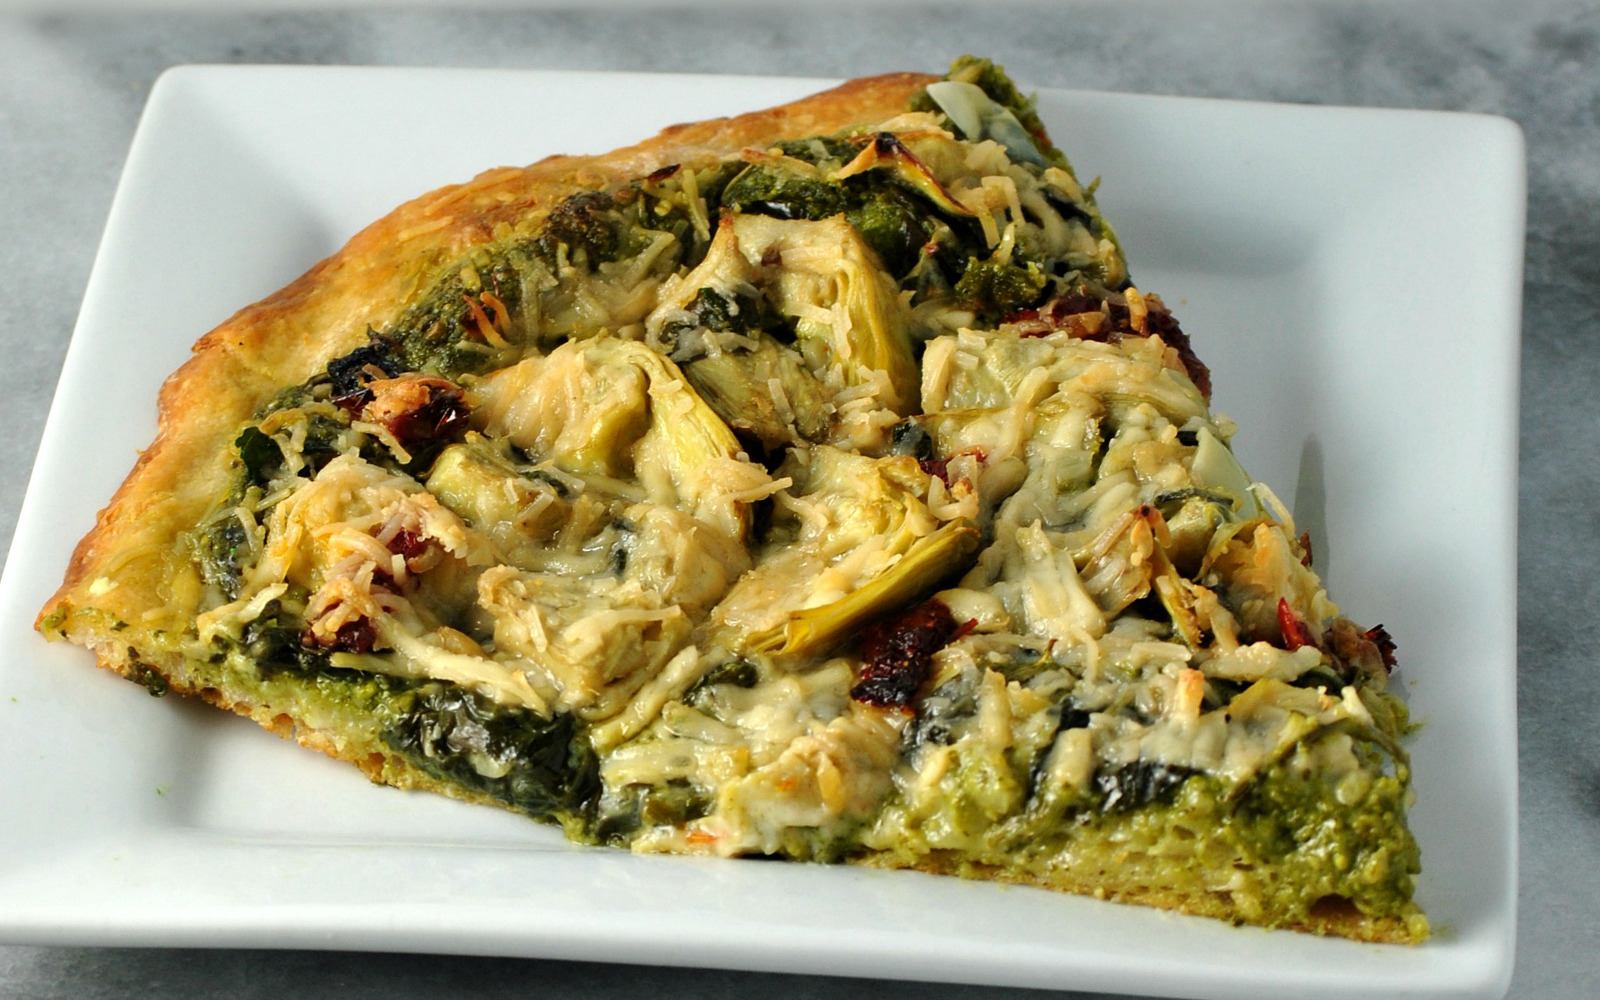 Spinach and Artichoke Pizza